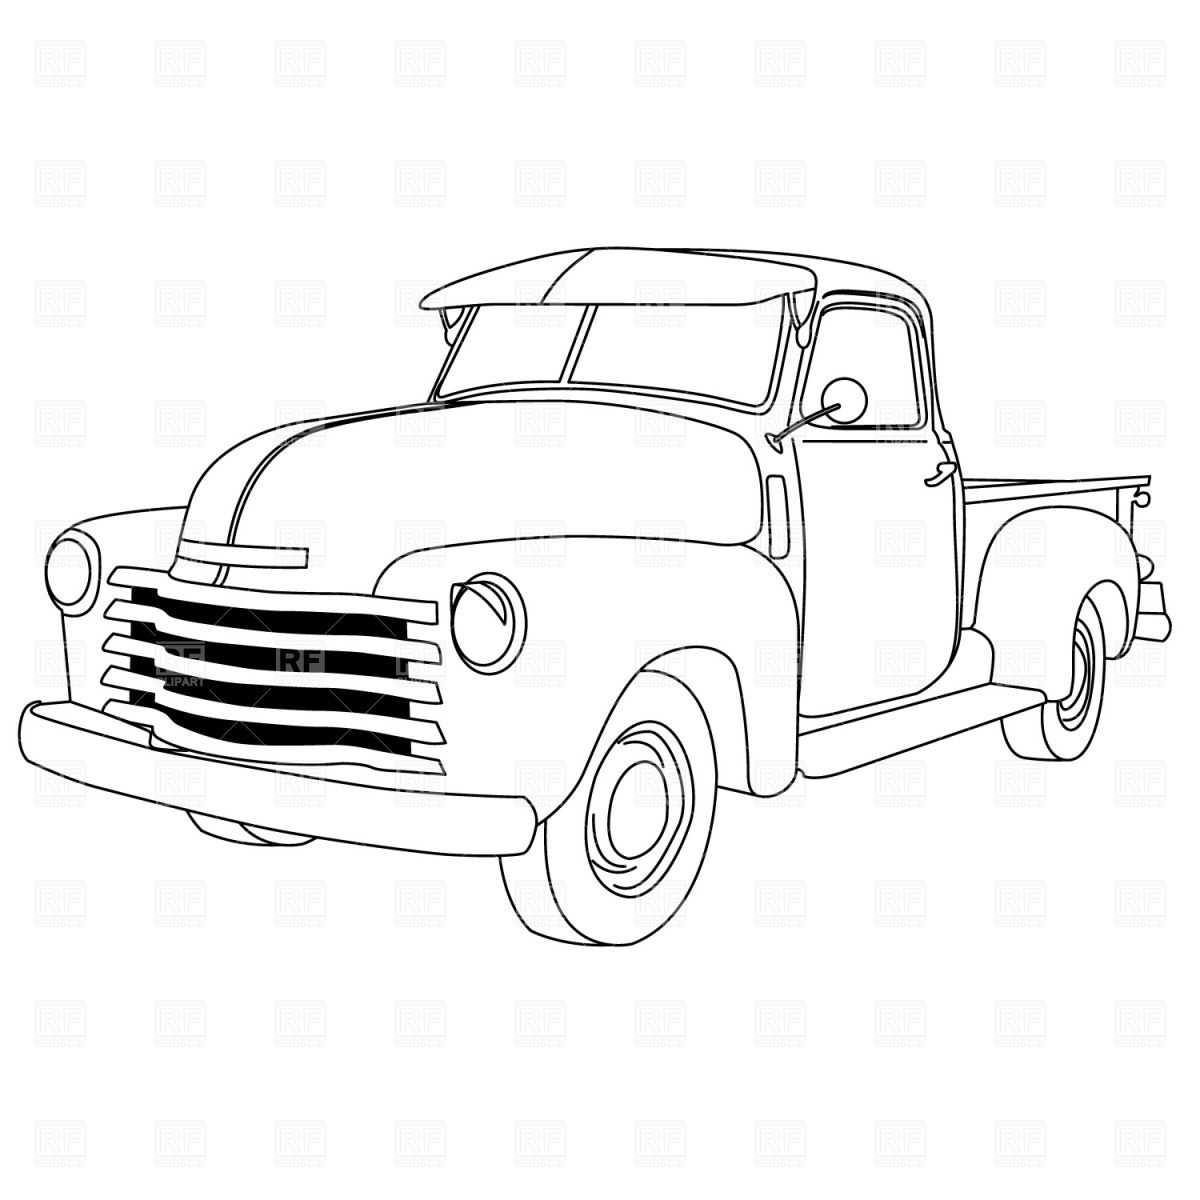 Dodge Truck Drawing At Getdrawings